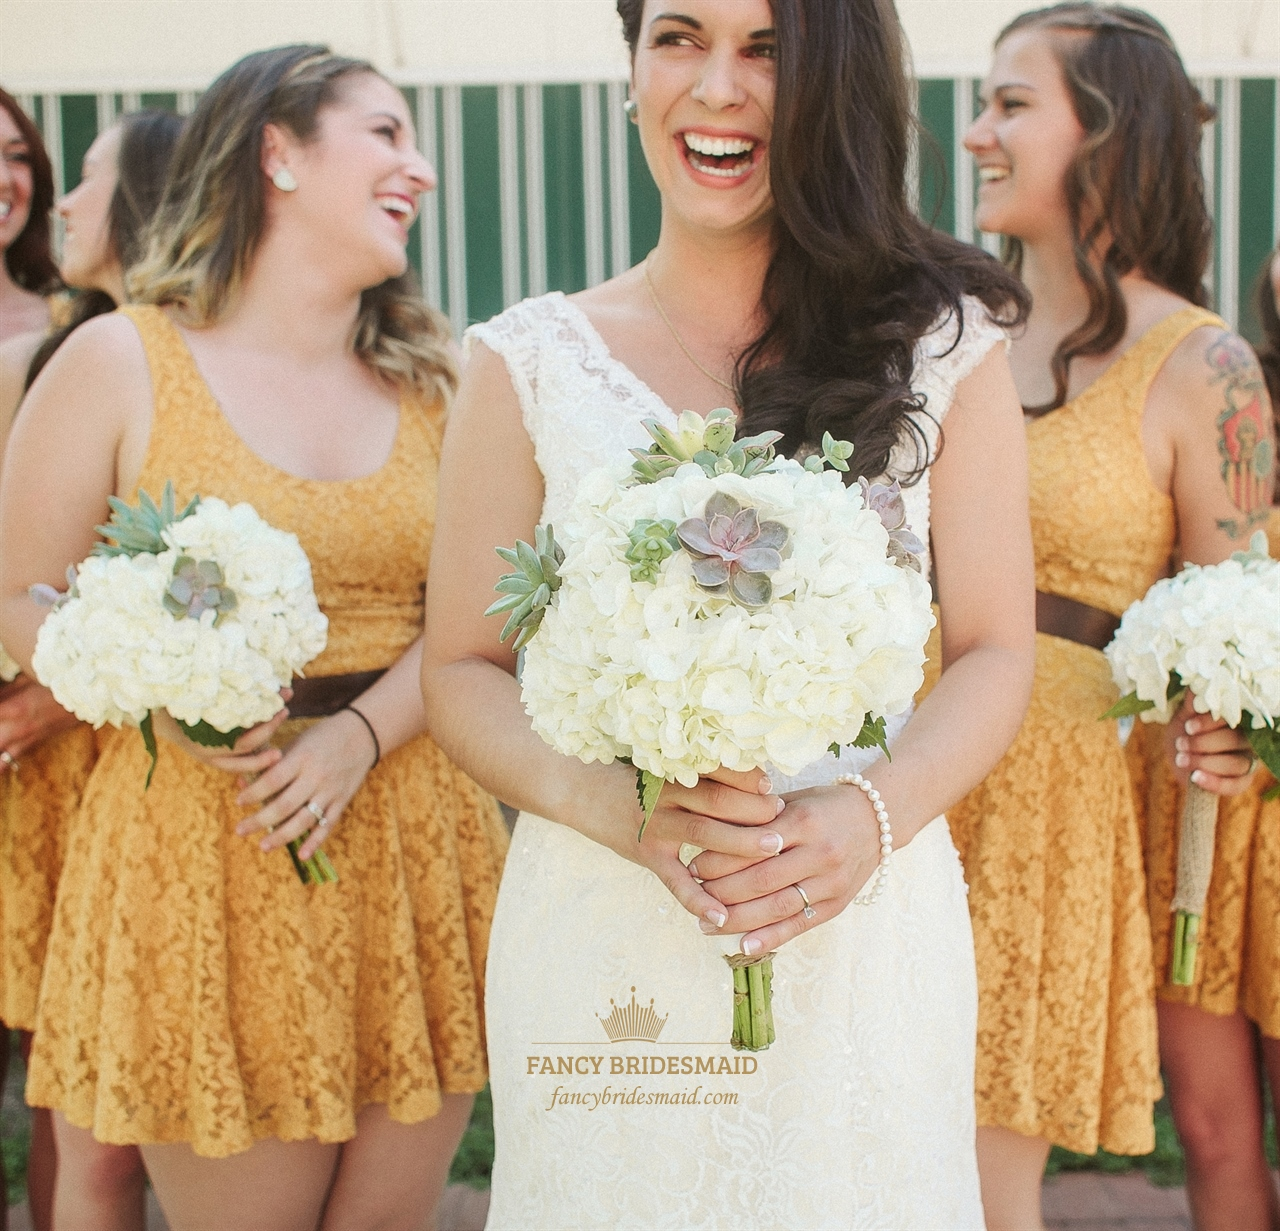 Sunflower yellow bridesmaid dresses fancy bridesmaid dresses cute sunflower yellow sleeveless lace short bridesmaid dress with belt ombrellifo Images